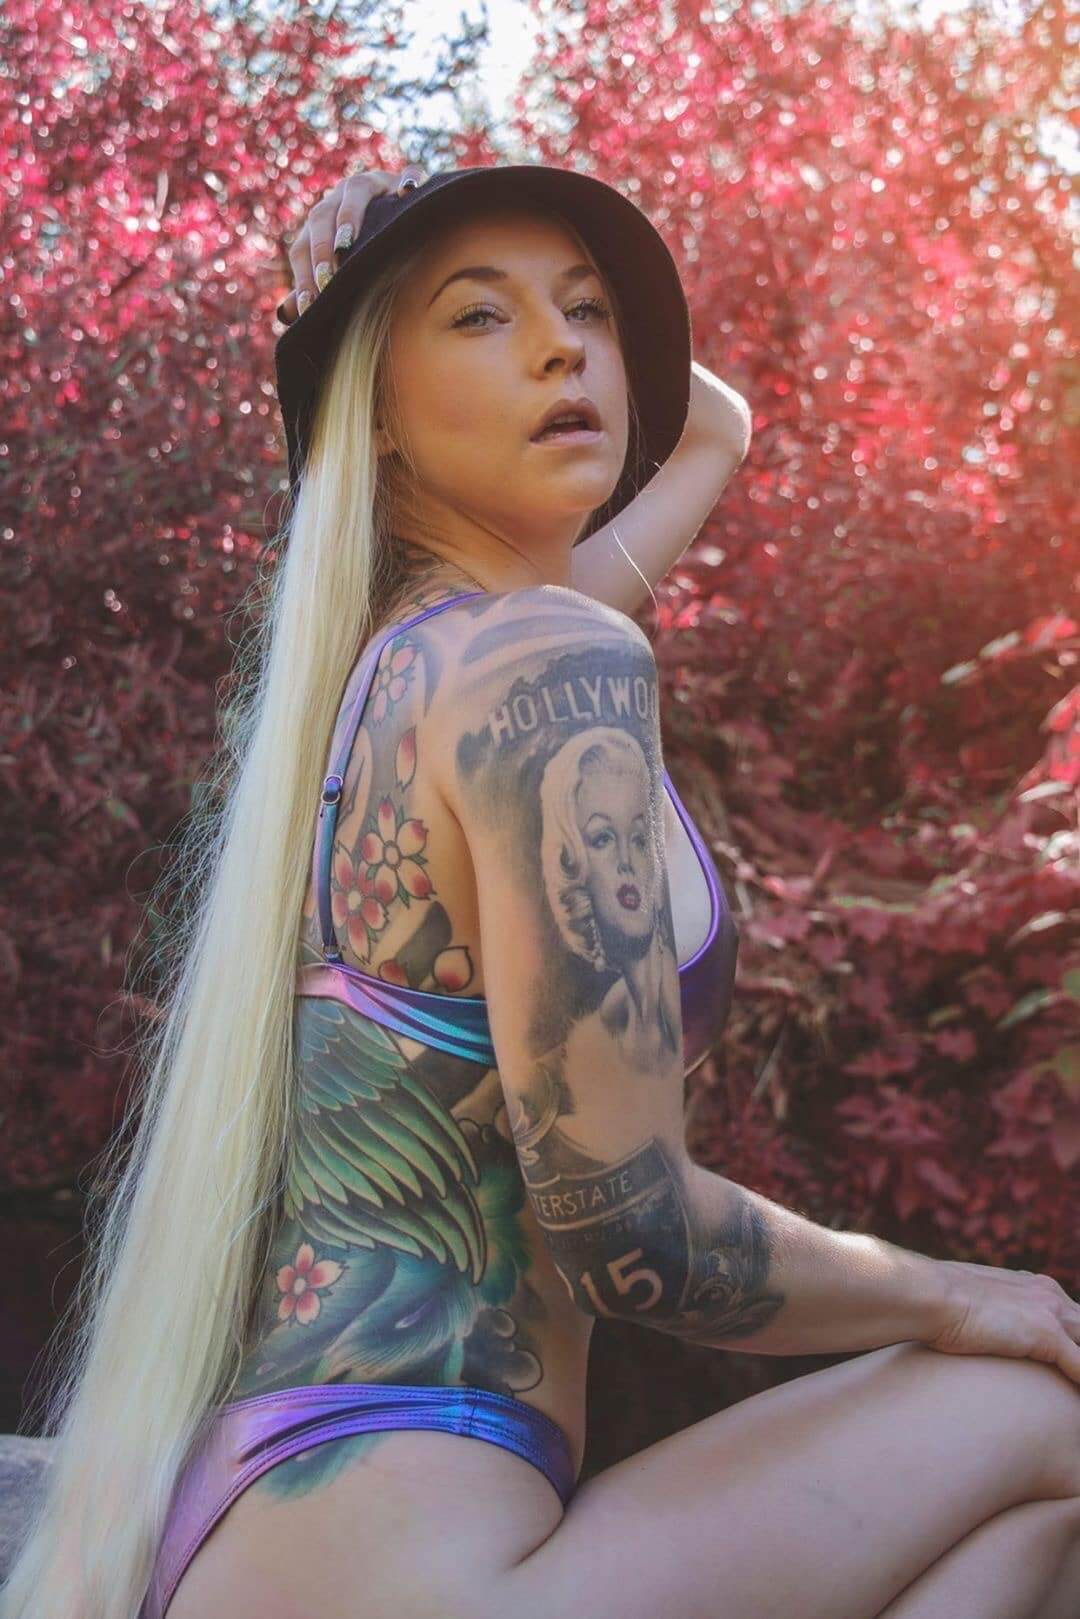 Beautiful blonde inked model Shayna Miller @its.shaynamiller wearing a multicolour bikini for an outdoor photoshoot holding one arm up showing her fit body full of tattoos